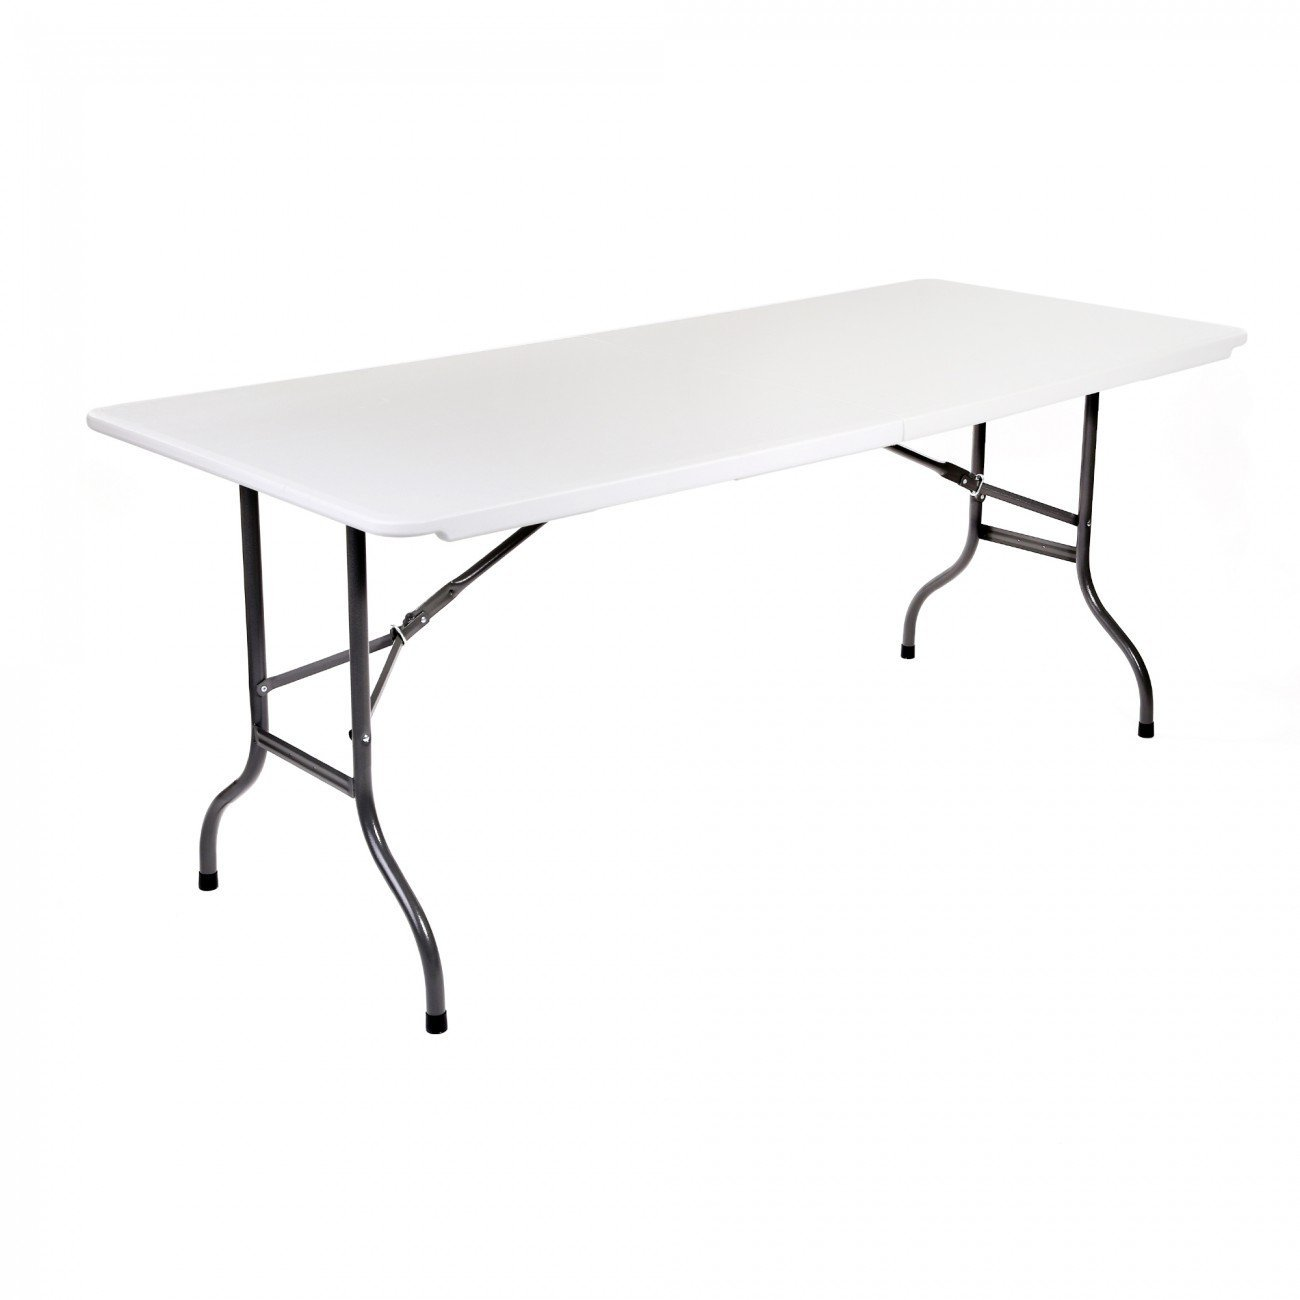 Faire Une Table De Jardin Acheter Table Pliante Table Pliable Table Rabattable Table Escamotable